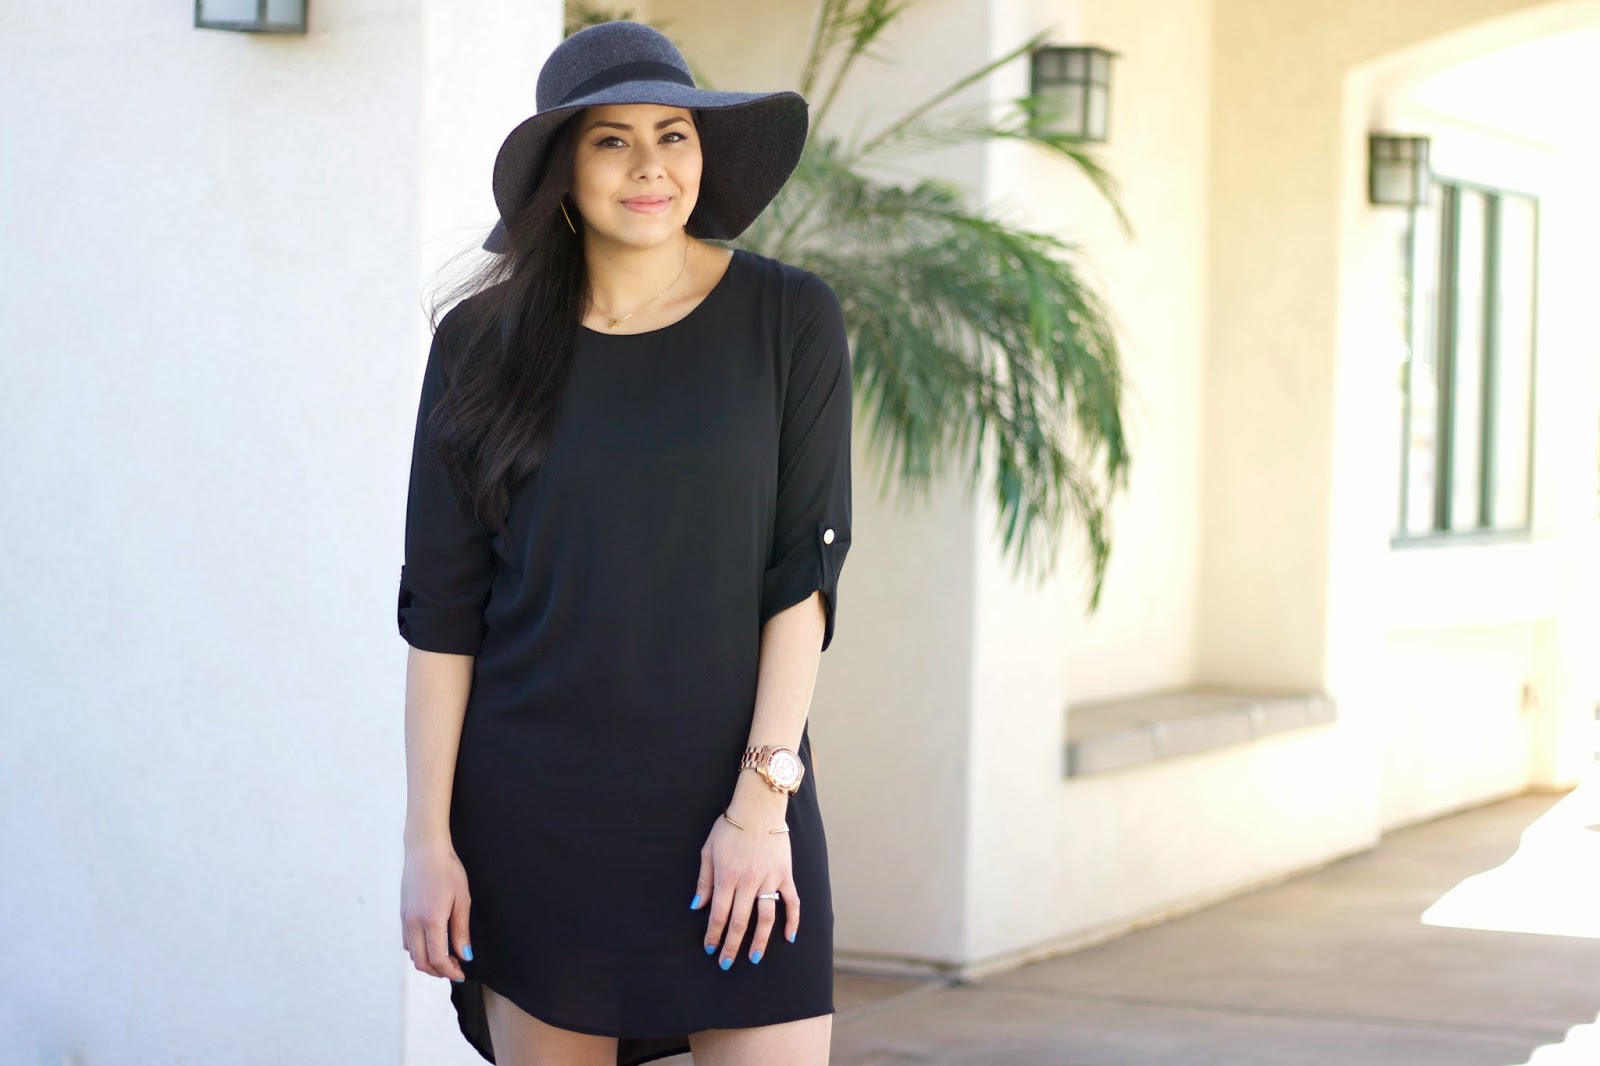 latina blogger, mexican blogger, latina bloguera, socal blogger, california blogger, olive skin